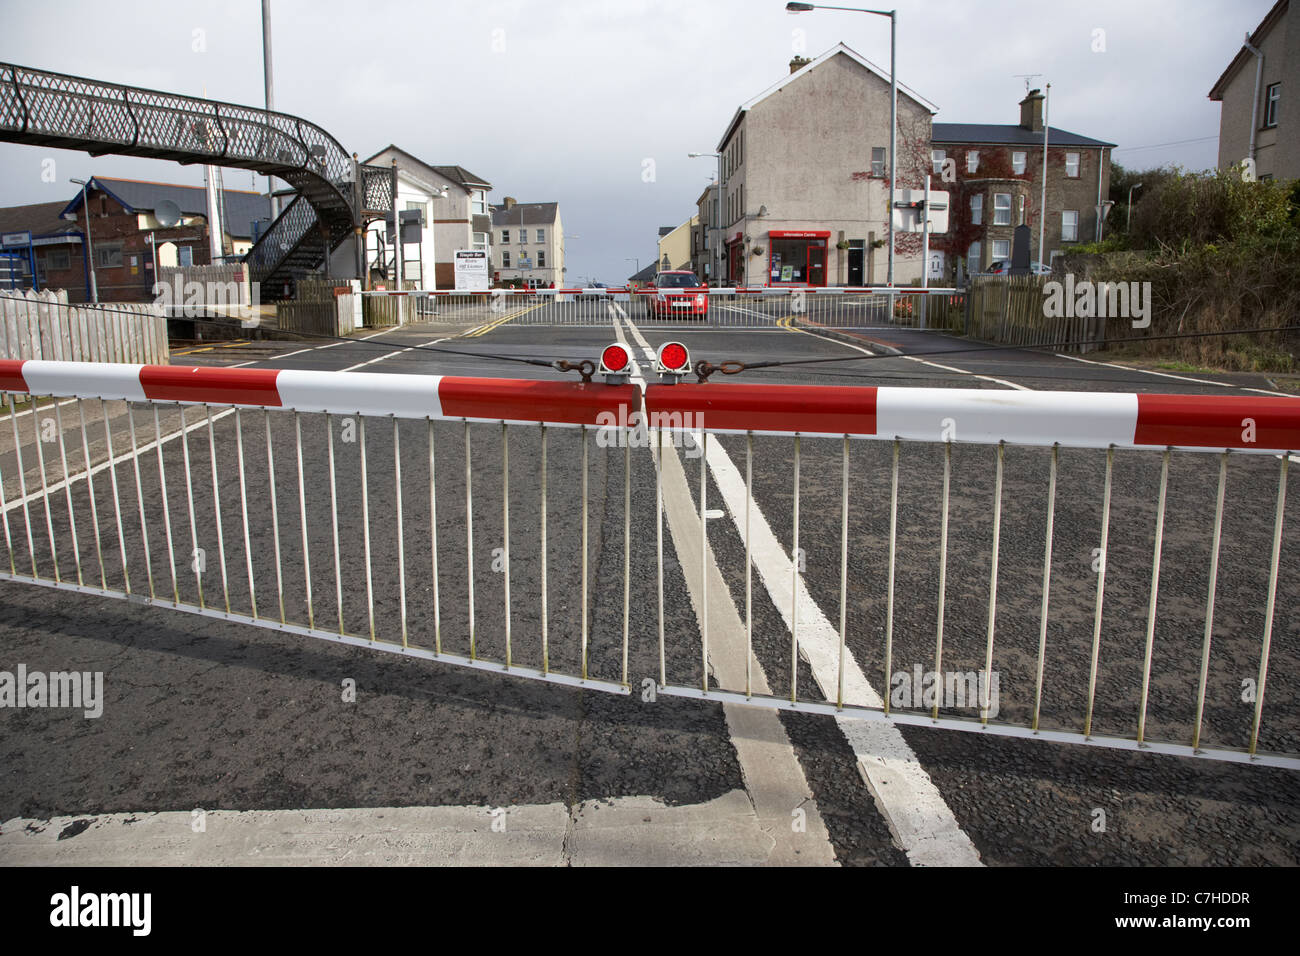 images How to Cross a Railroad Crossing